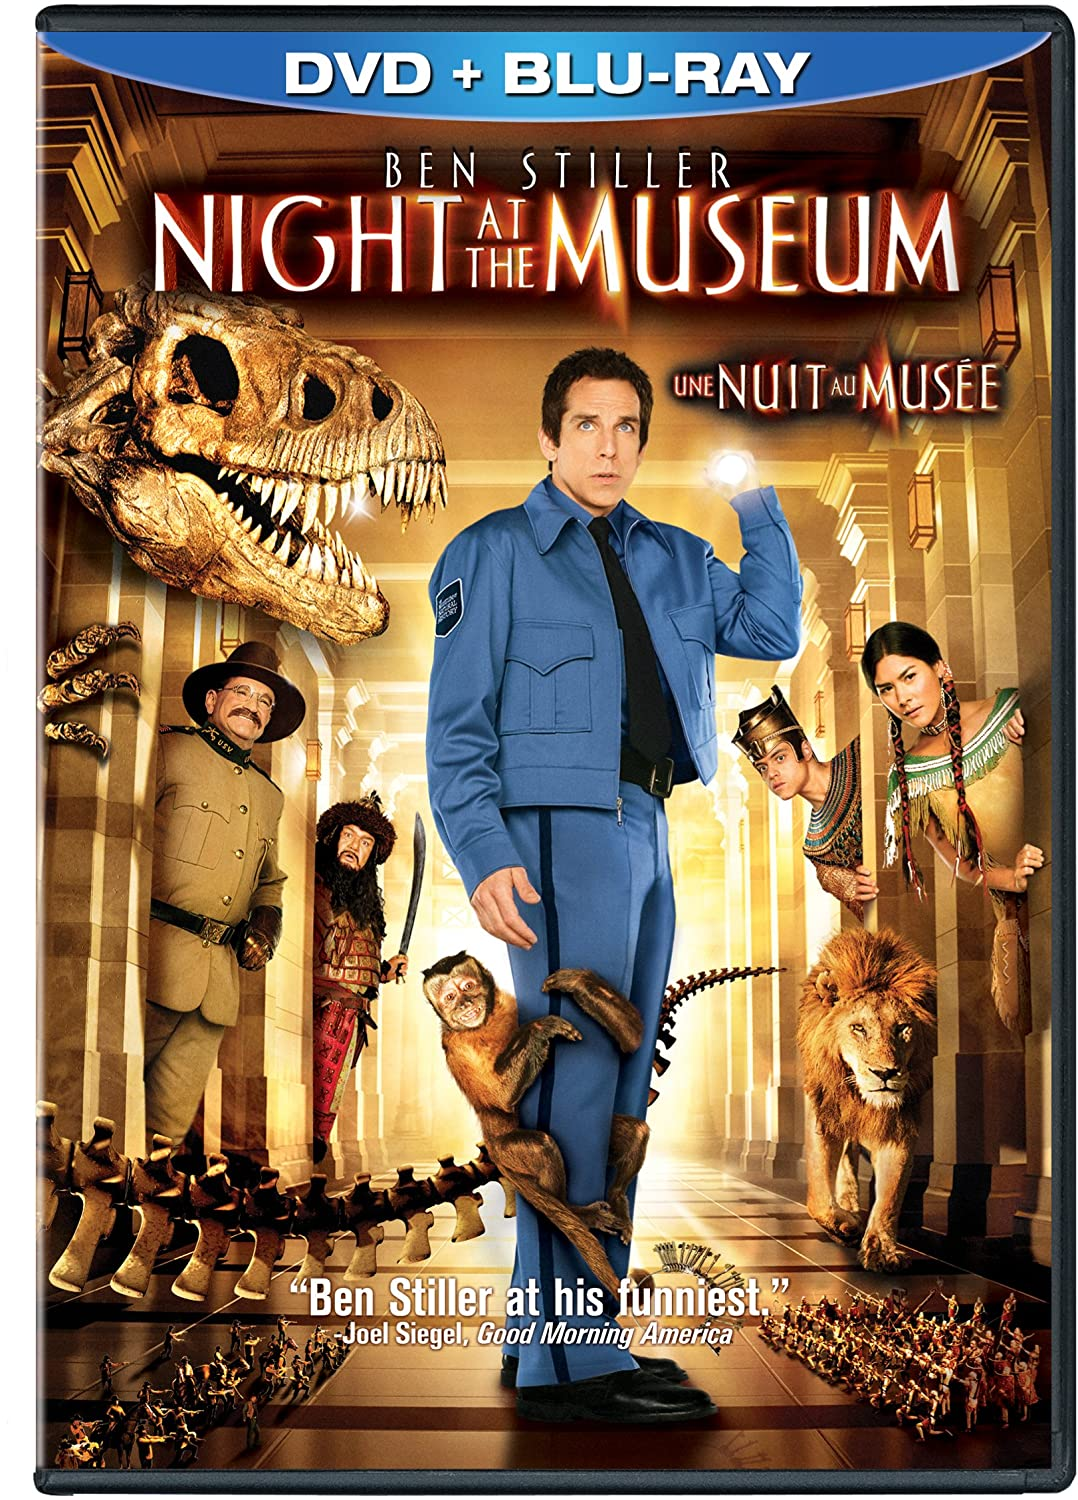 Night at the Museum (DVD / Blu-ray)